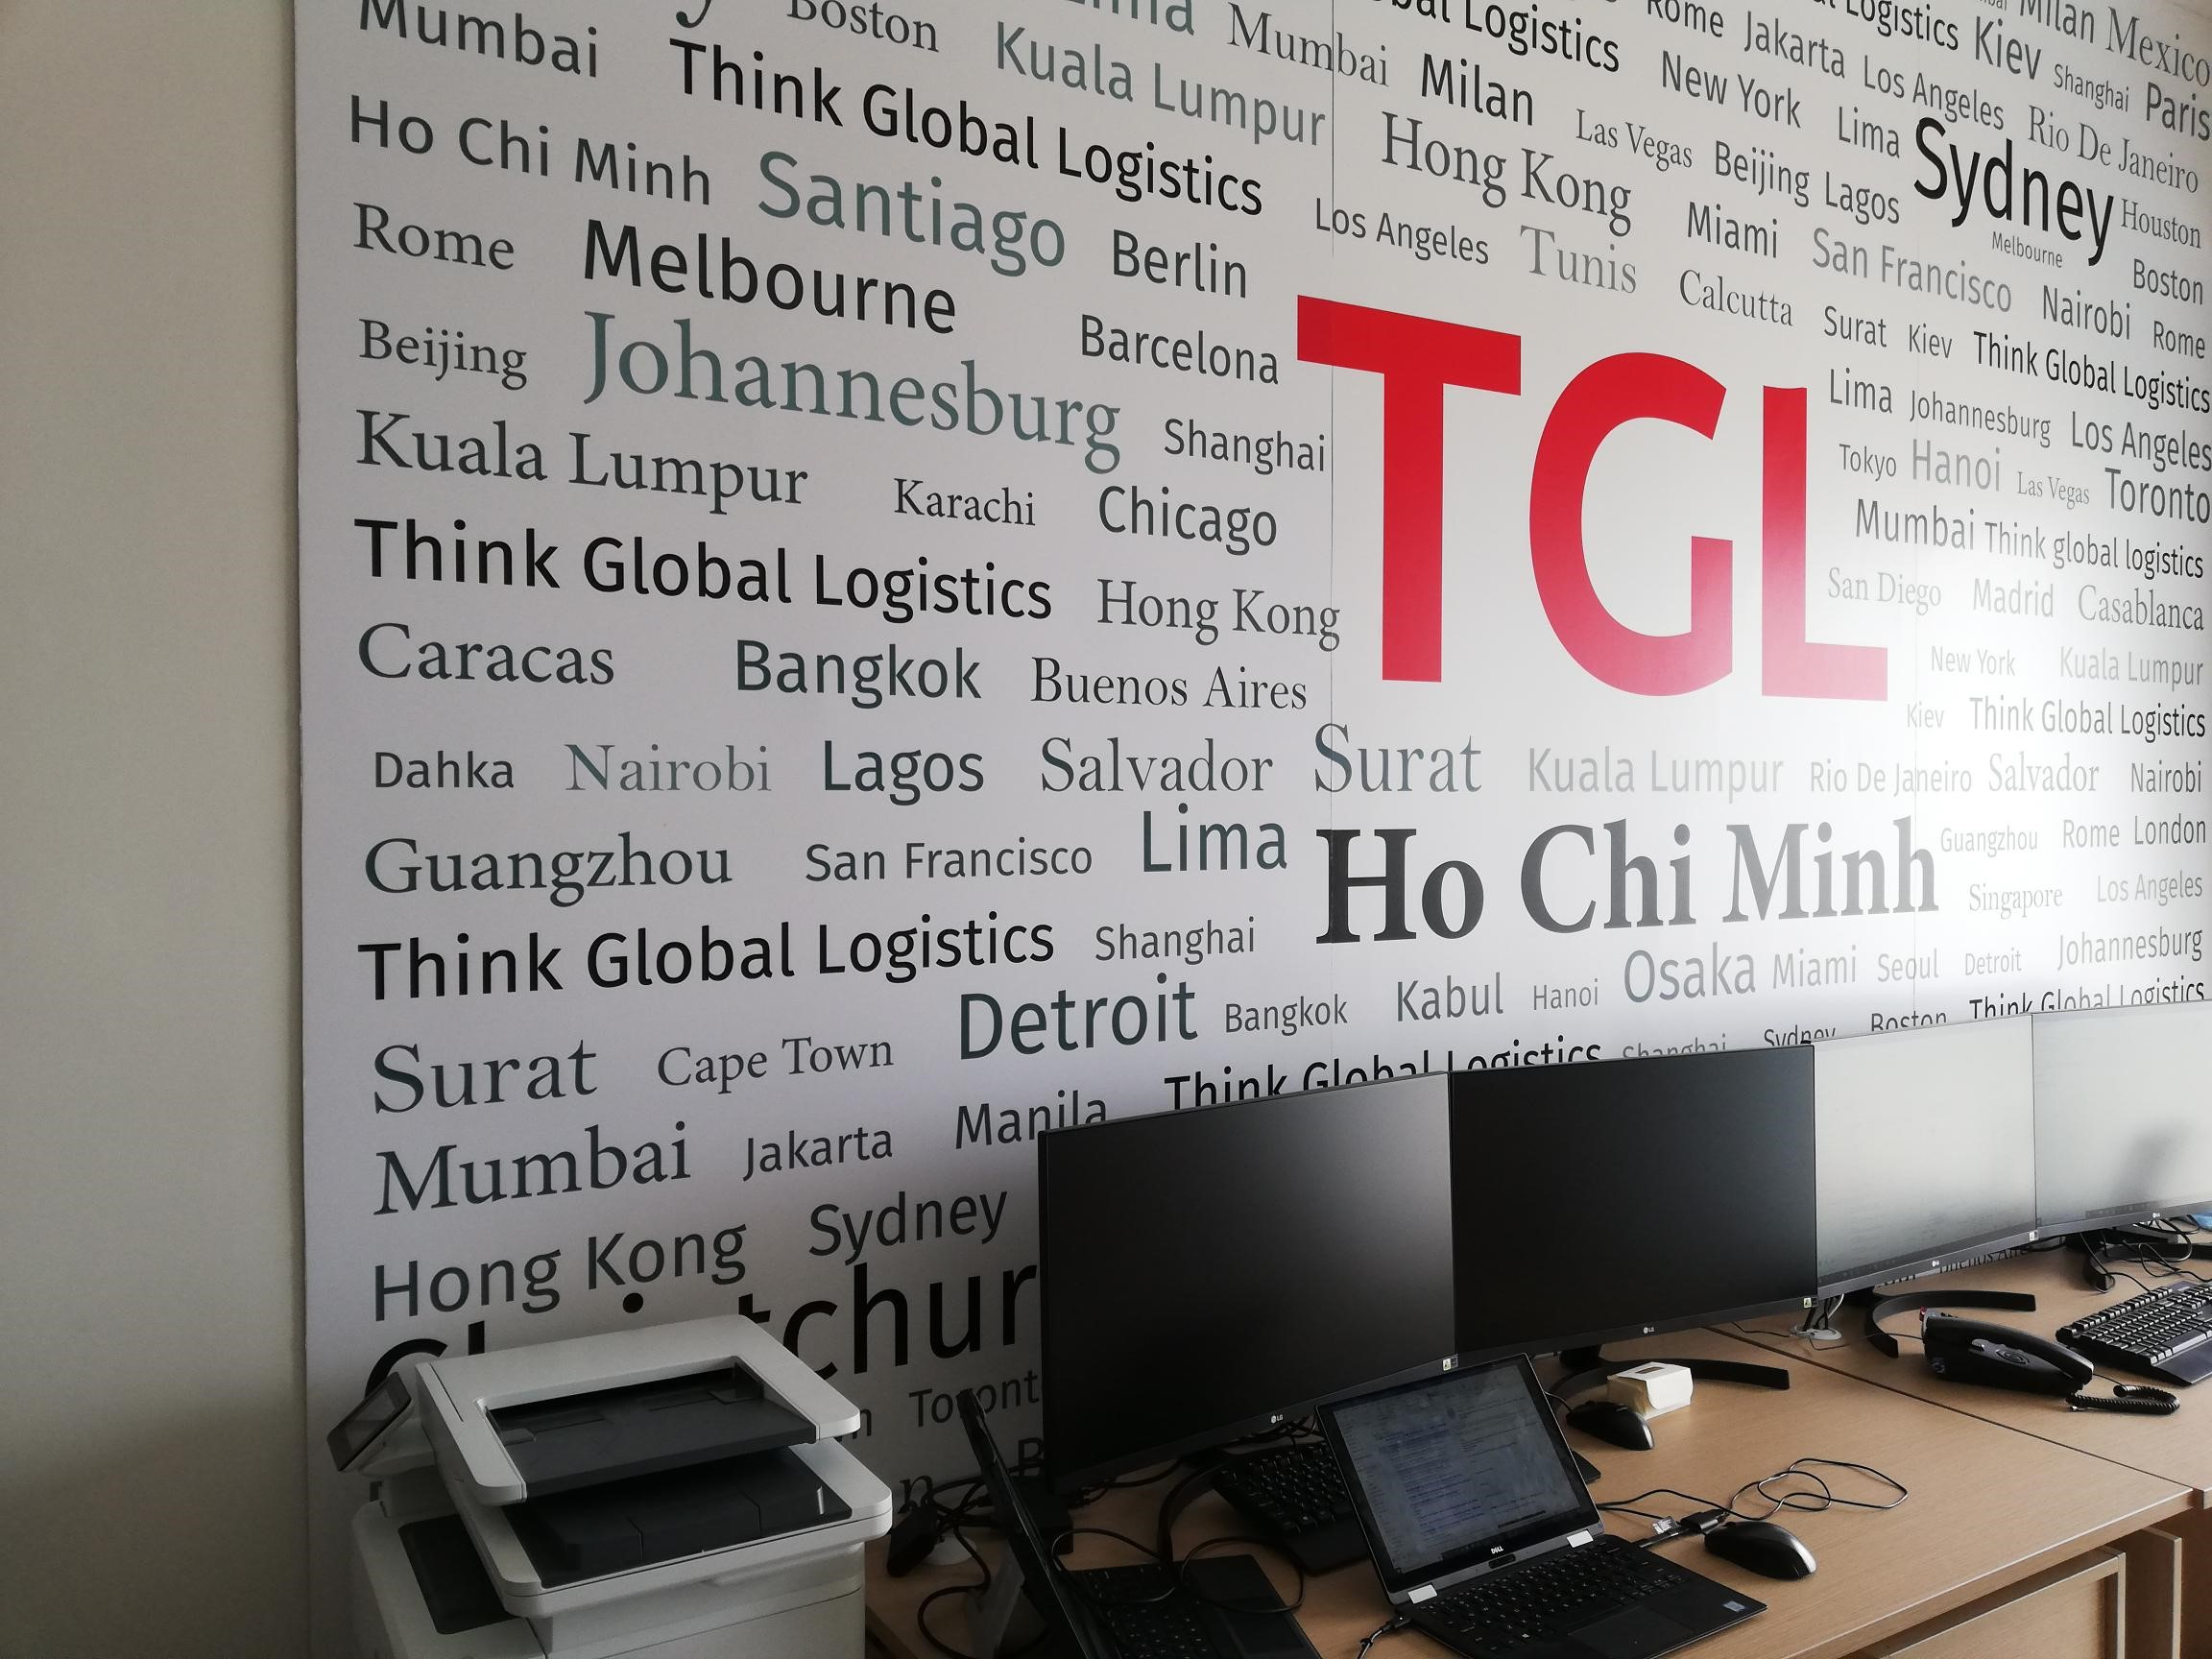 Our TGL Office in Vietnam is Opened! - Our New Office is Now Operational